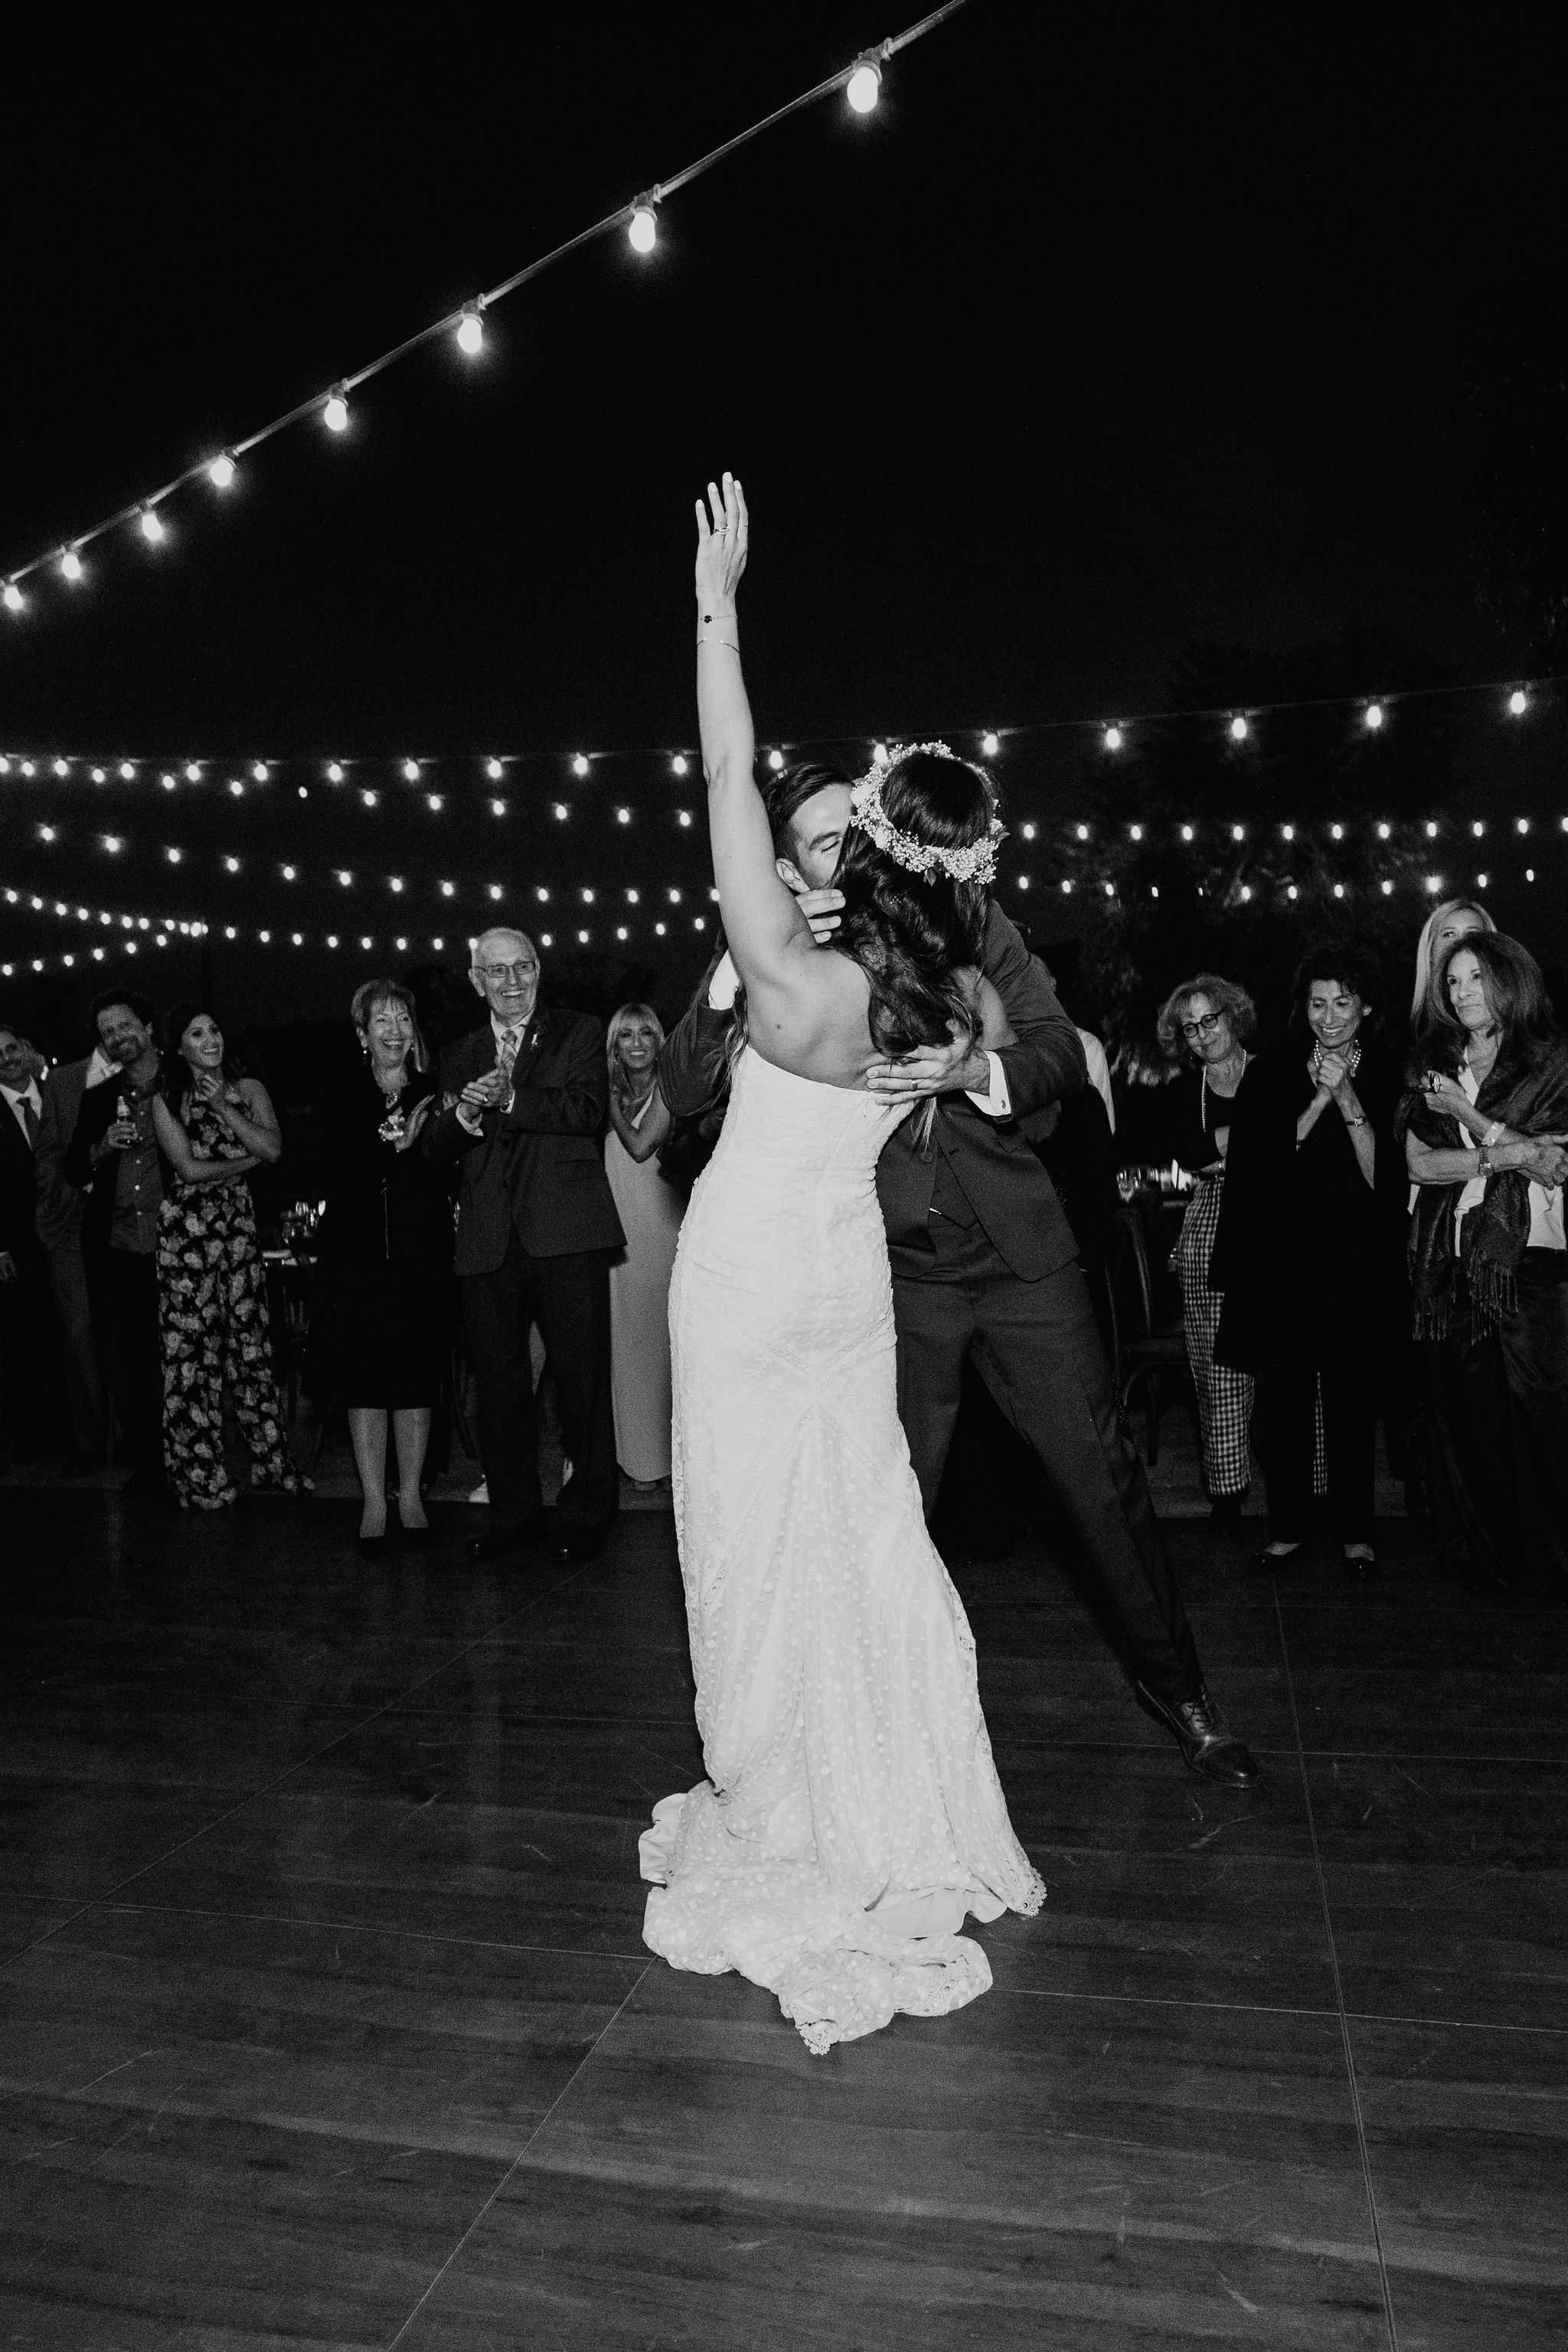 WalnutGroveWedding_Geoff&LyndsiPhotography_Casie&Matt_Reception49.jpg